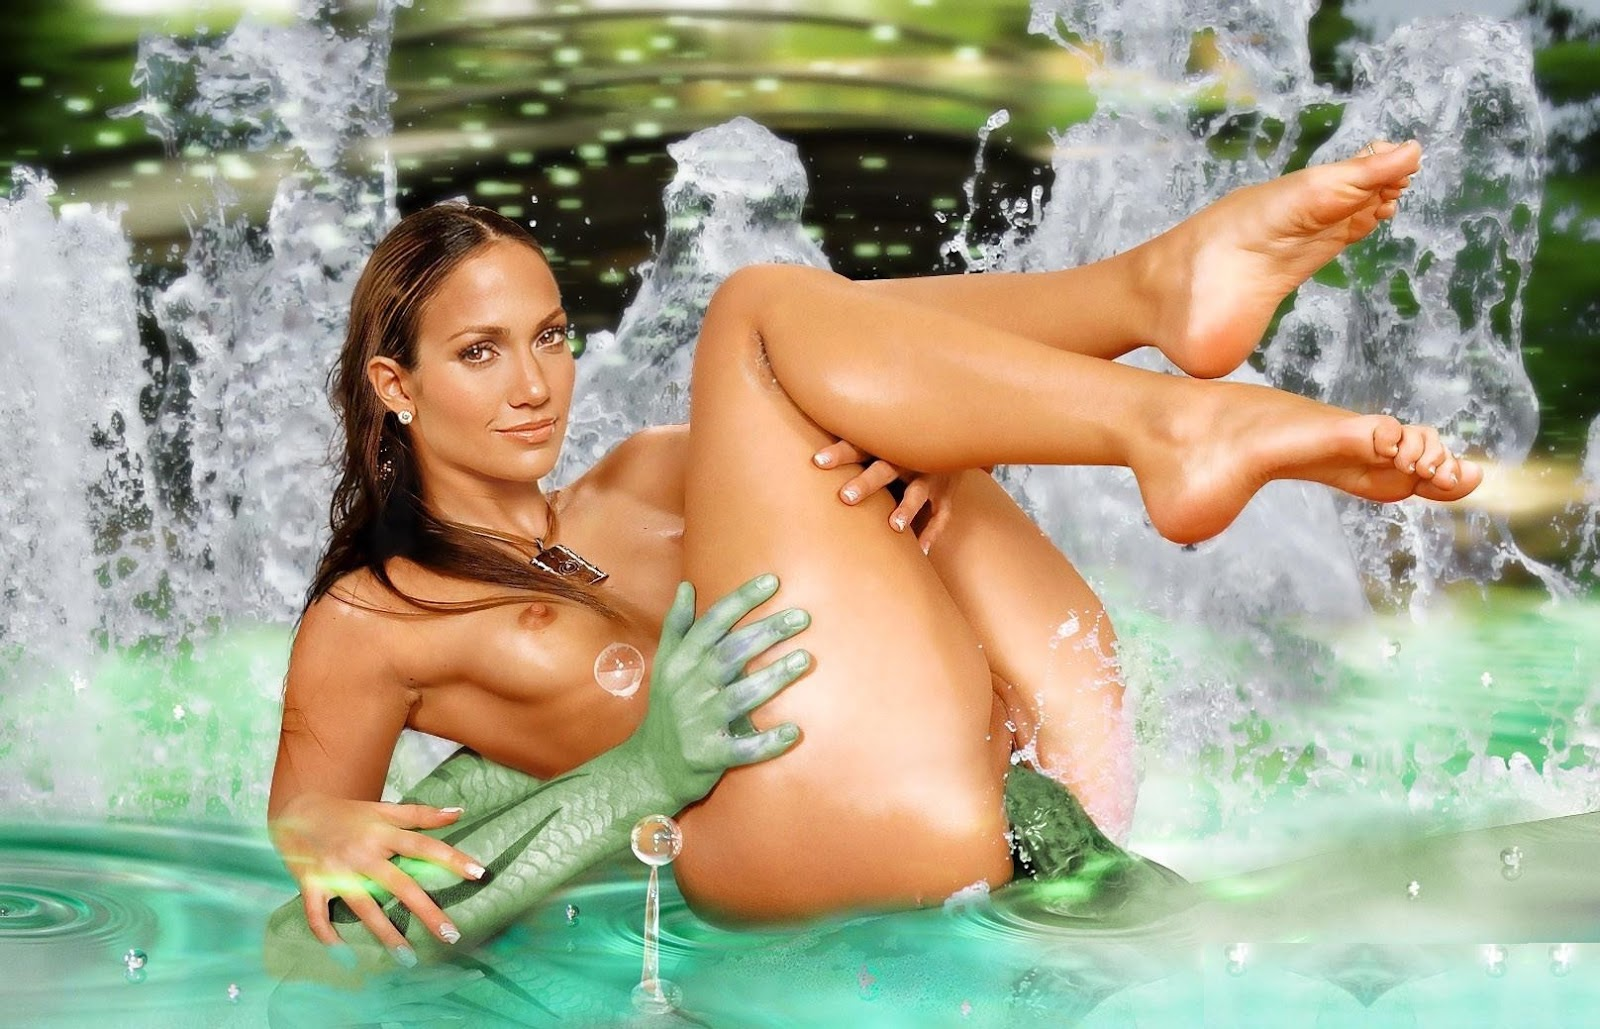 jlo-xxx-hot-naked-pusy-star-wars-porn-video